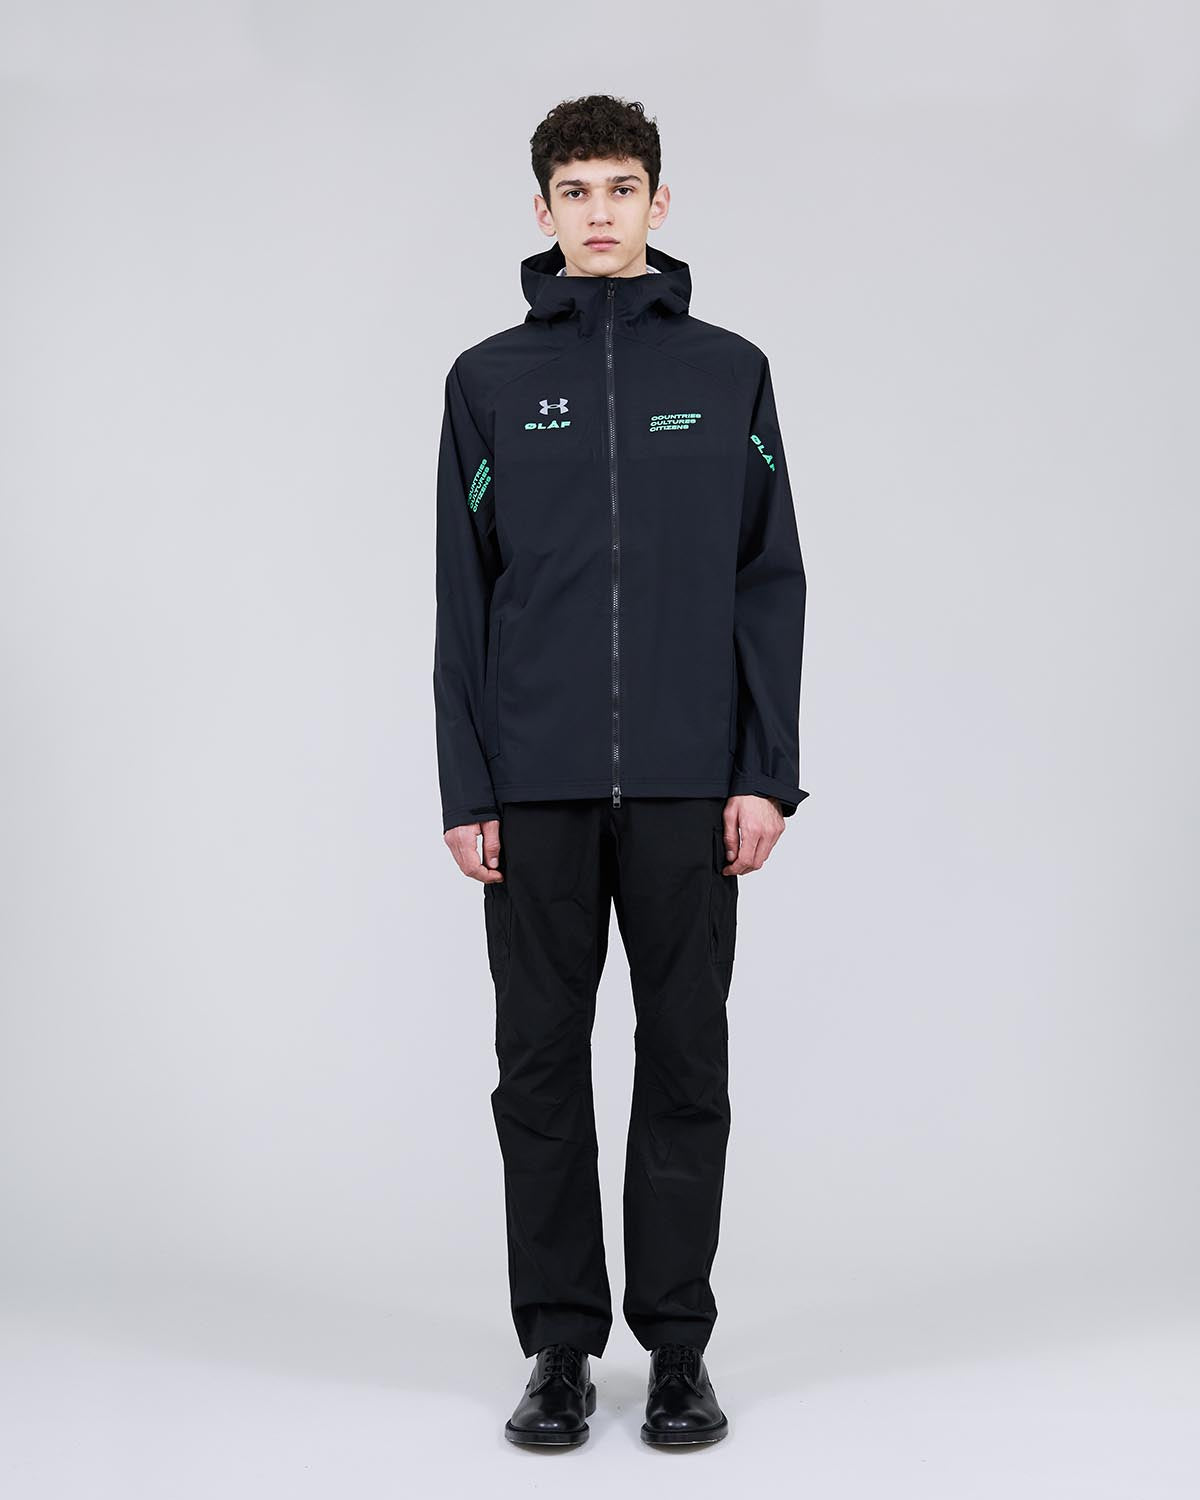 ØLÅF x UA Sports Jacket<br>Black